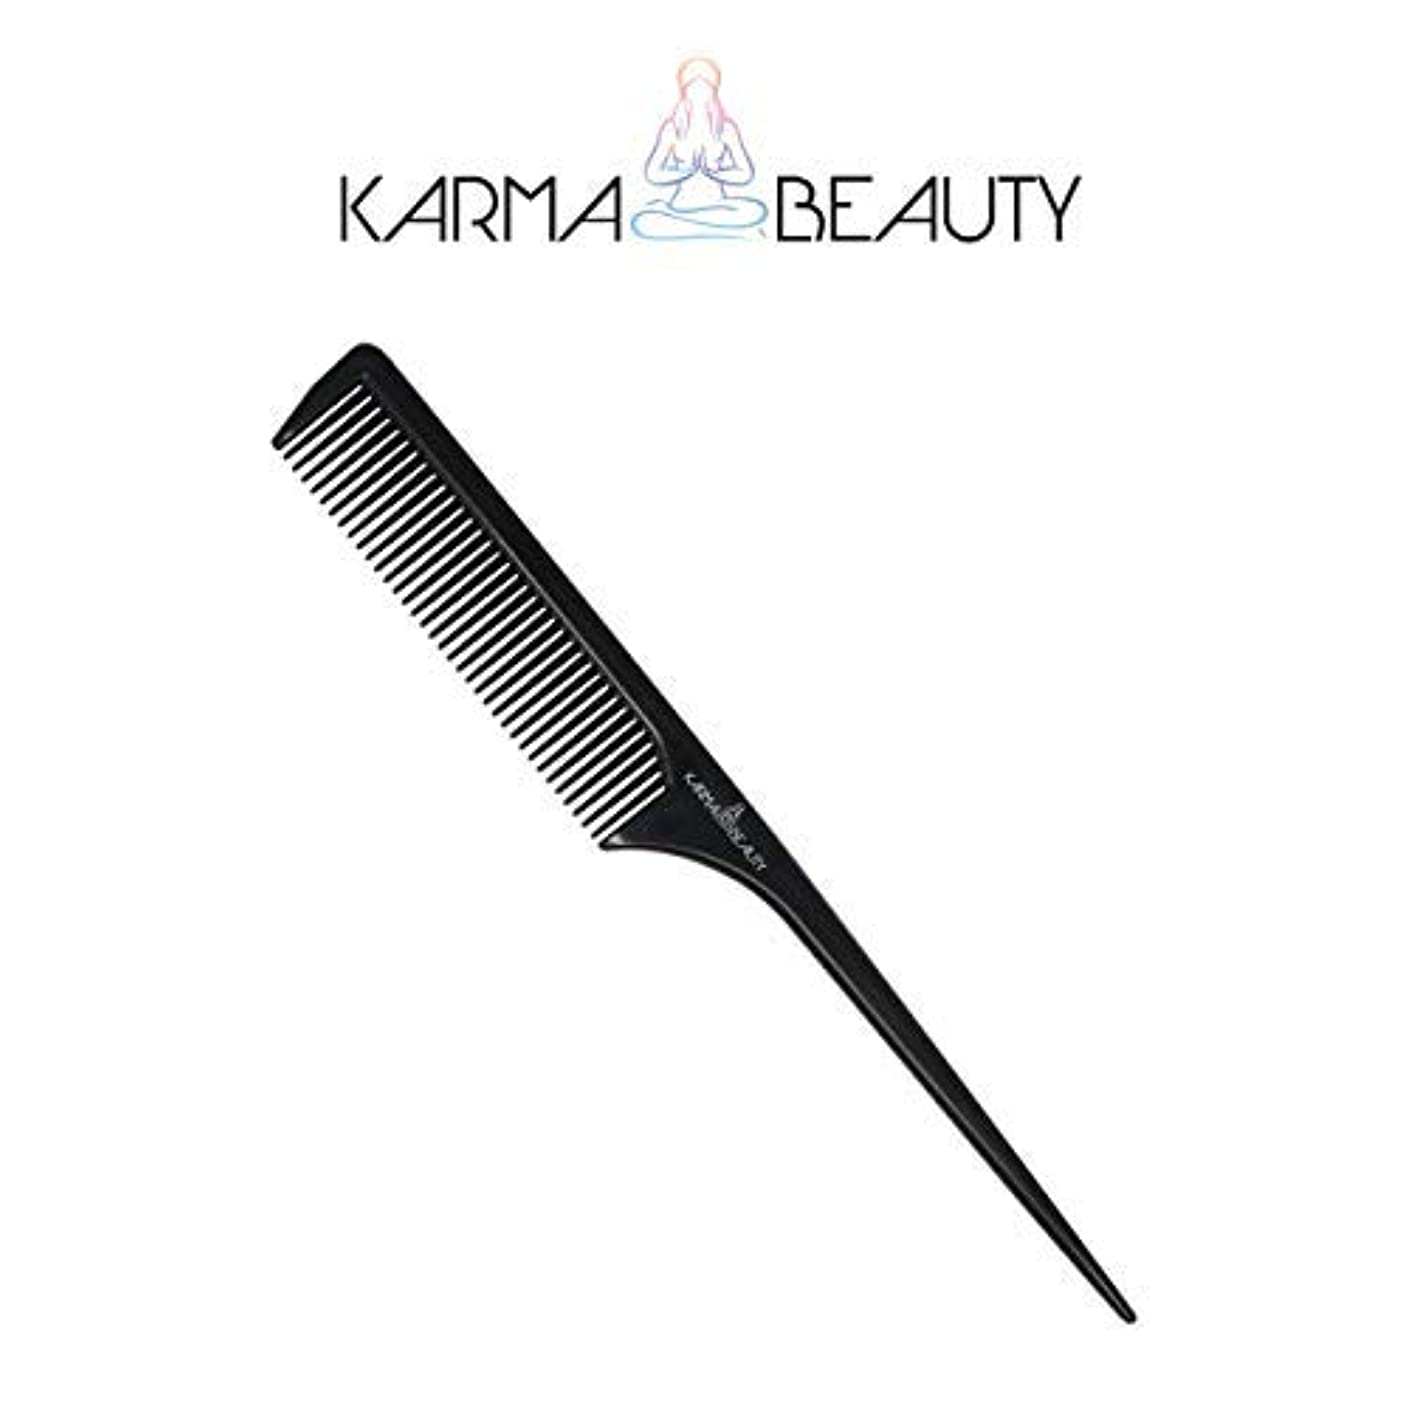 気候の山穴インタネットを見るTail Comb | Fine Tooth Hair Comb | Thin and Long Handle | Teasing Comb | For All Hair Type | Karma Beauty | (Black) [並行輸入品]